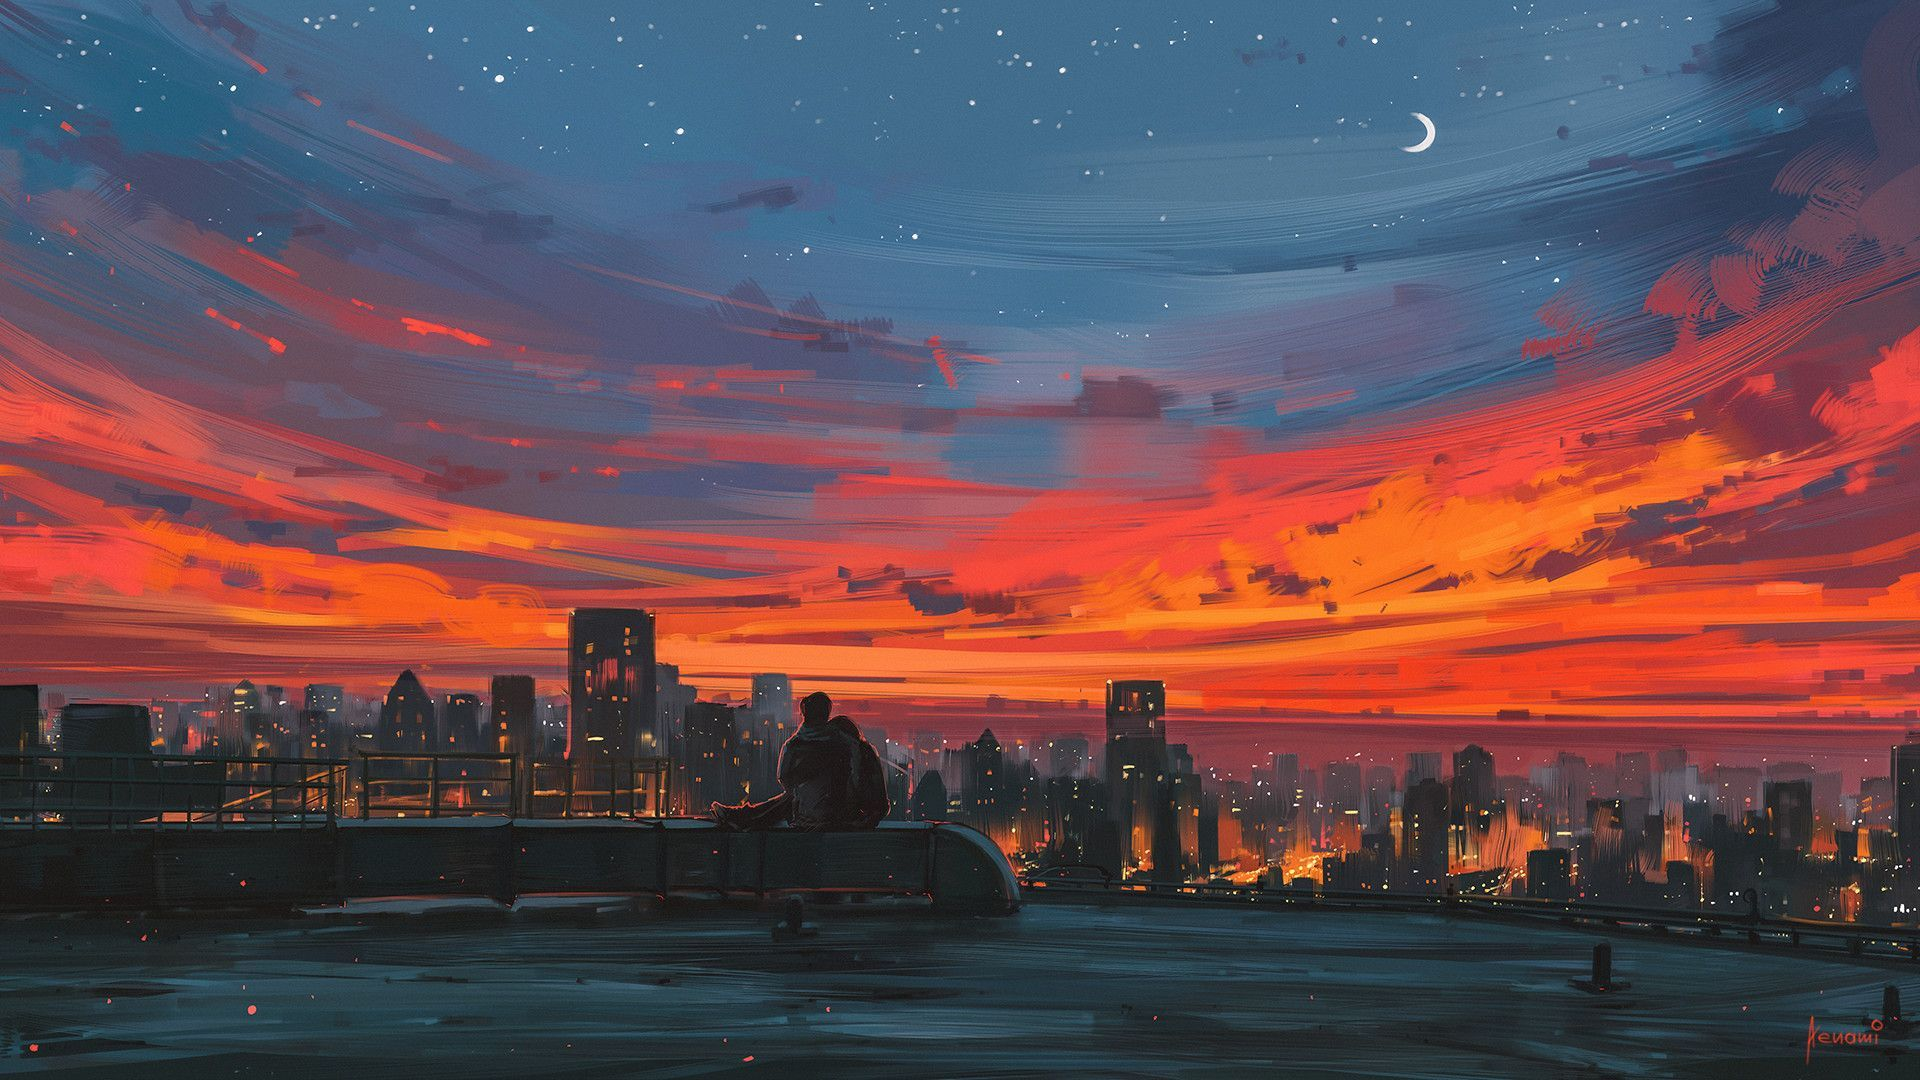 Aesthetic Sunset Anime Wallpaper Hd Scenery Wallpaper Computer Wallpaper Desktop Wallpapers Desktop Wallpaper Art